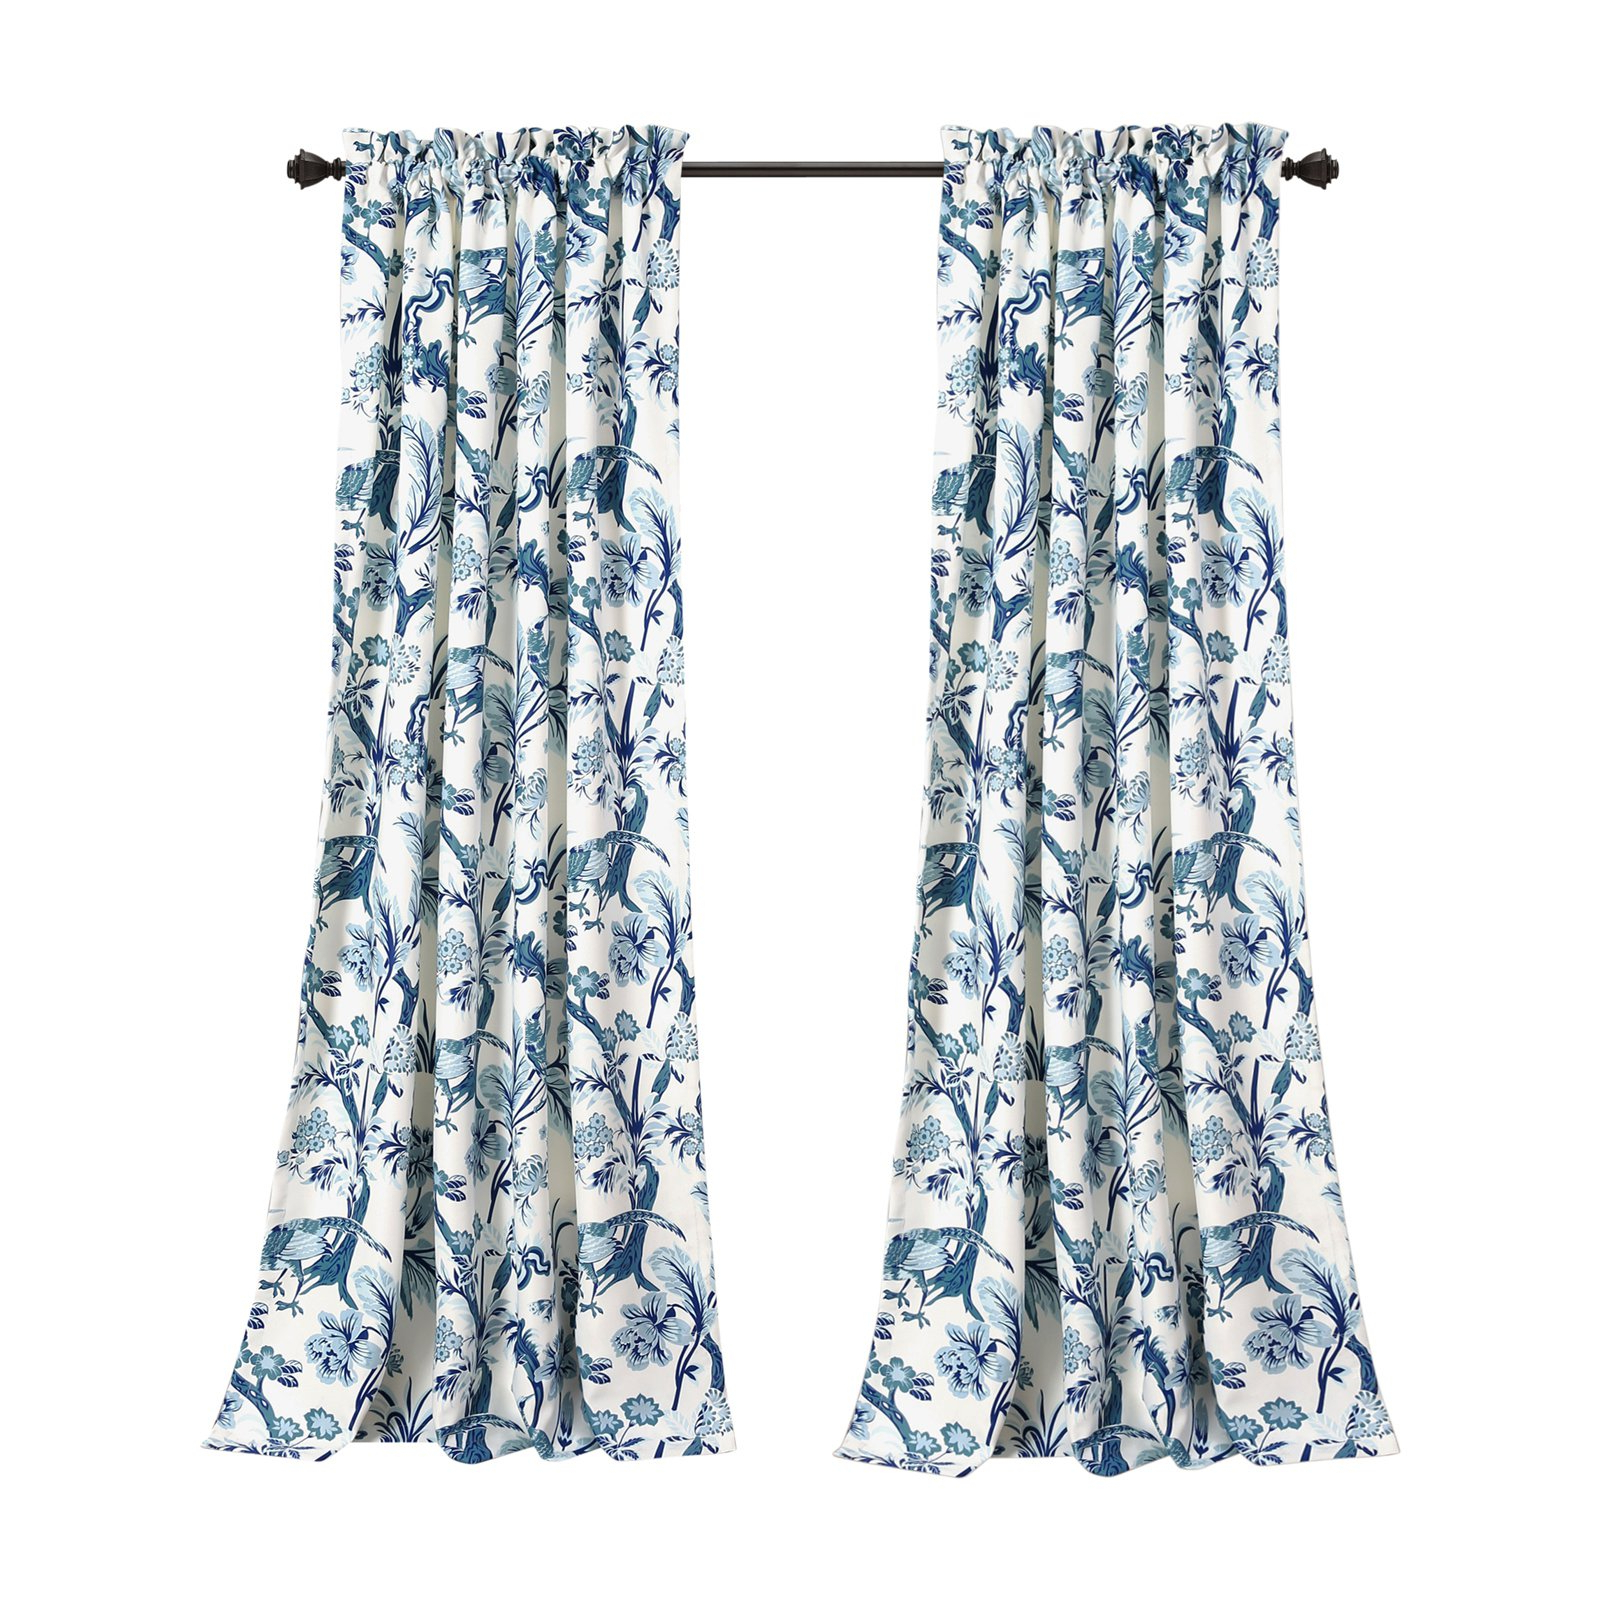 Best And Newest Lush Decor Dolores Room Darkening Curtain Panel Pair In 2019 With Regard To Dolores Room Darkening Floral Curtain Panel Pairs (View 13 of 20)